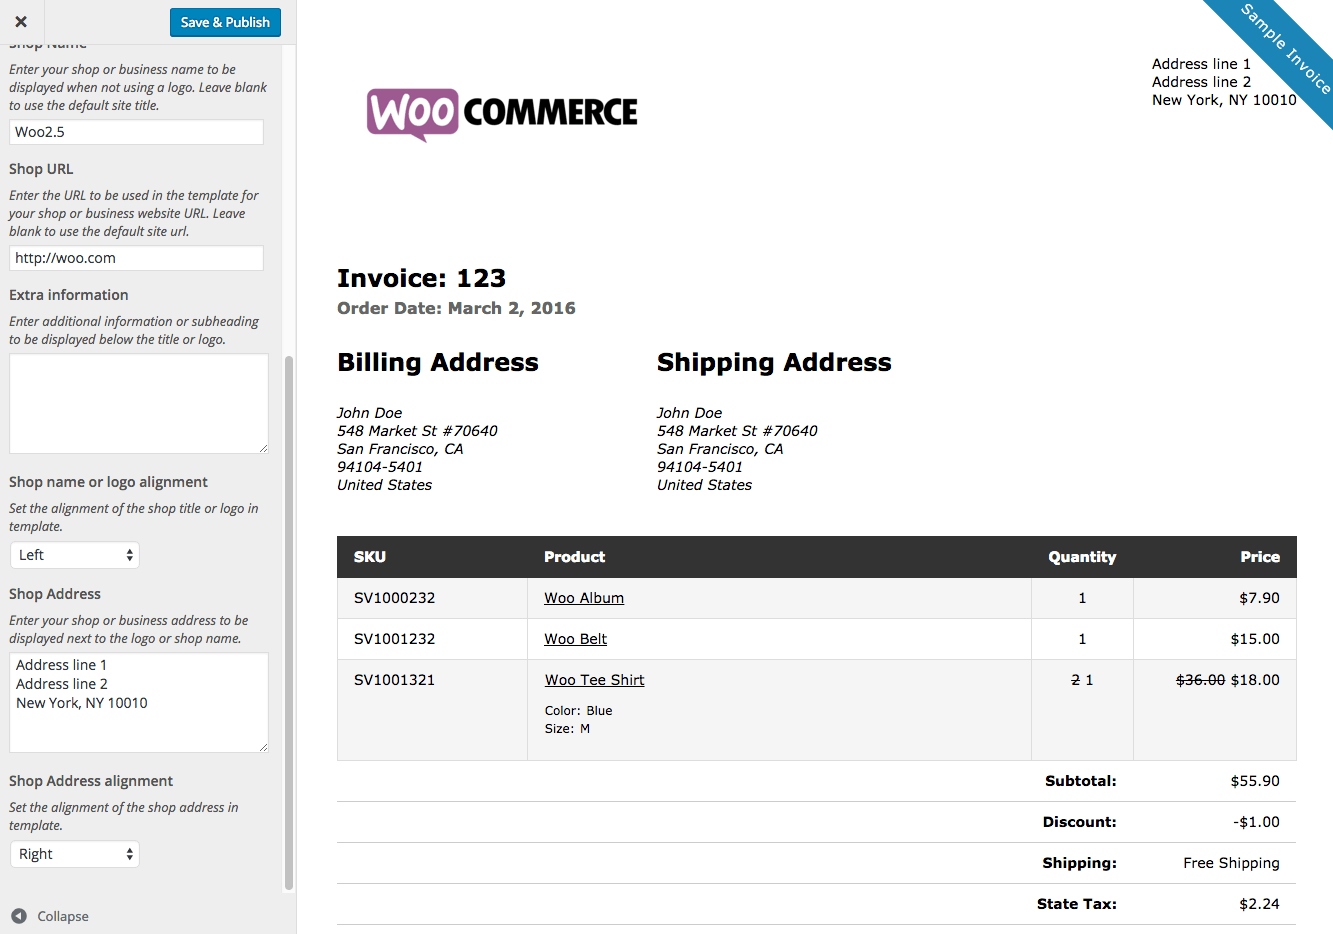 Soulfulpowerus  Nice Woocommerce Print Invoices Amp Packing Lists  Woocommerce Docs With Heavenly Woocommerce Print Invoices  Packing Lists Customizer With Delectable Invoice Scanner Software Also Tax Invoice Receipt In Addition Performa Invoice Format And Blank Invoice Free As Well As Blank Invoice Form Free Additionally How To Word An Invoice From Docswoocommercecom With Soulfulpowerus  Heavenly Woocommerce Print Invoices Amp Packing Lists  Woocommerce Docs With Delectable Woocommerce Print Invoices  Packing Lists Customizer And Nice Invoice Scanner Software Also Tax Invoice Receipt In Addition Performa Invoice Format From Docswoocommercecom